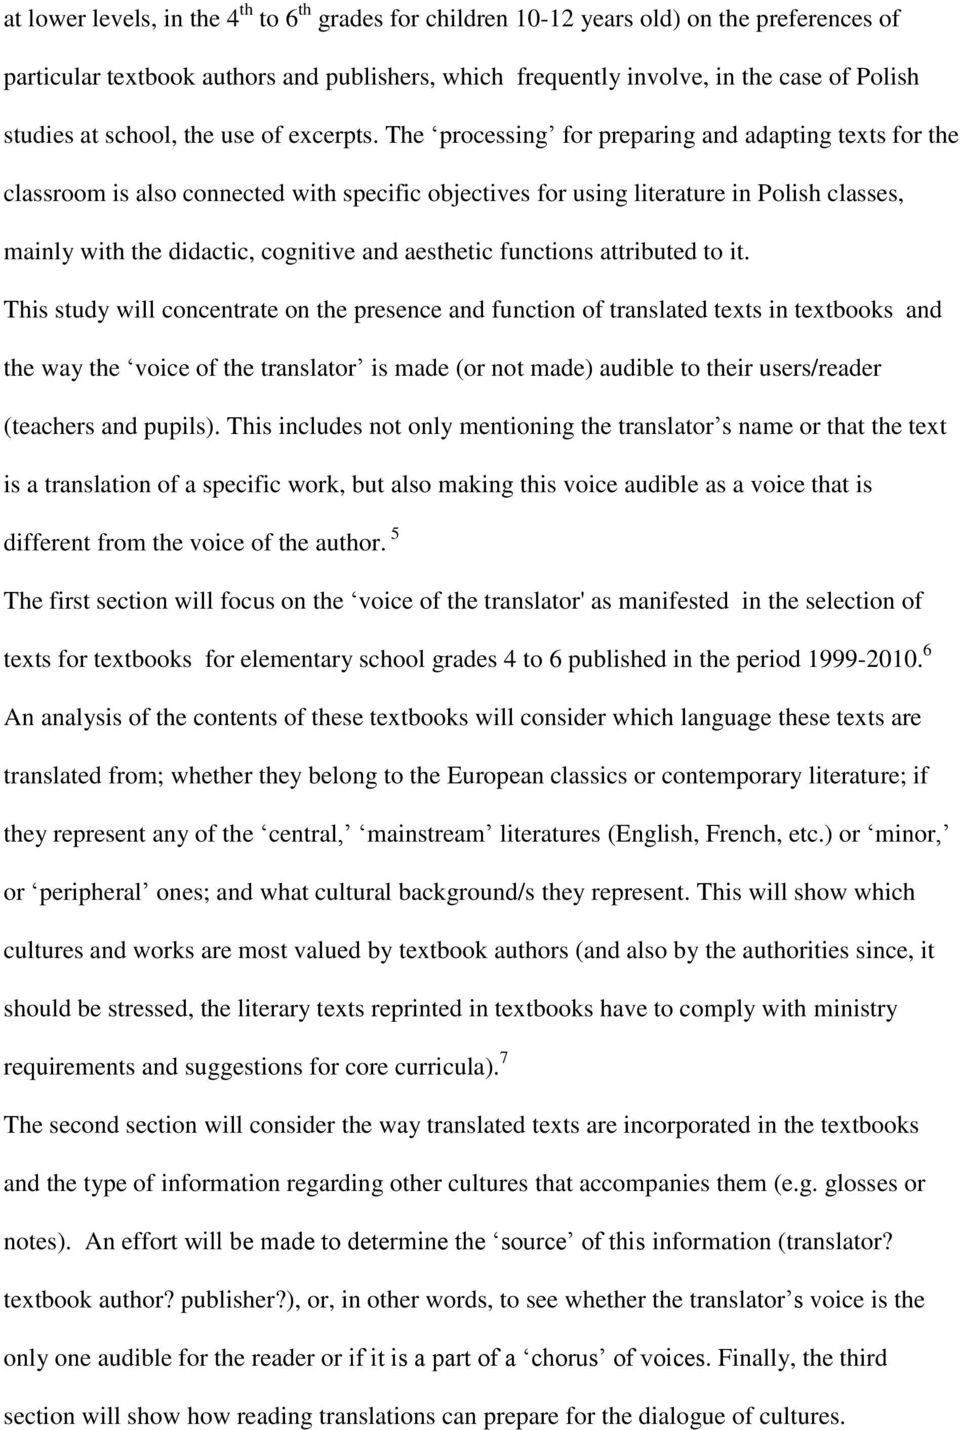 The processing for preparing and adapting texts for the classroom is also connected with specific objectives for using literature in Polish classes, mainly with the didactic, cognitive and aesthetic